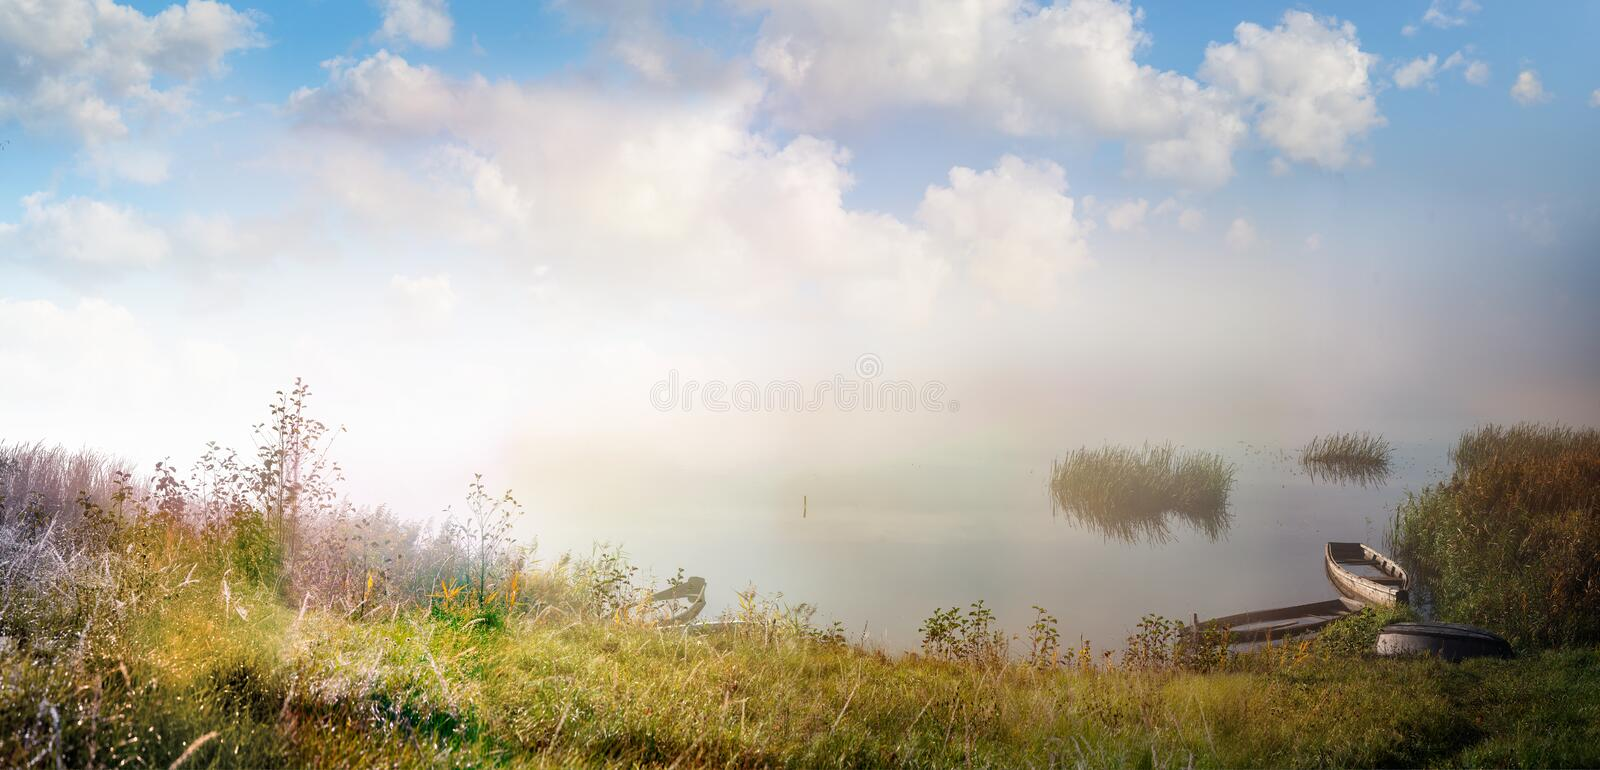 Panoramic autumn landscape with boats on a water body shore stock photography